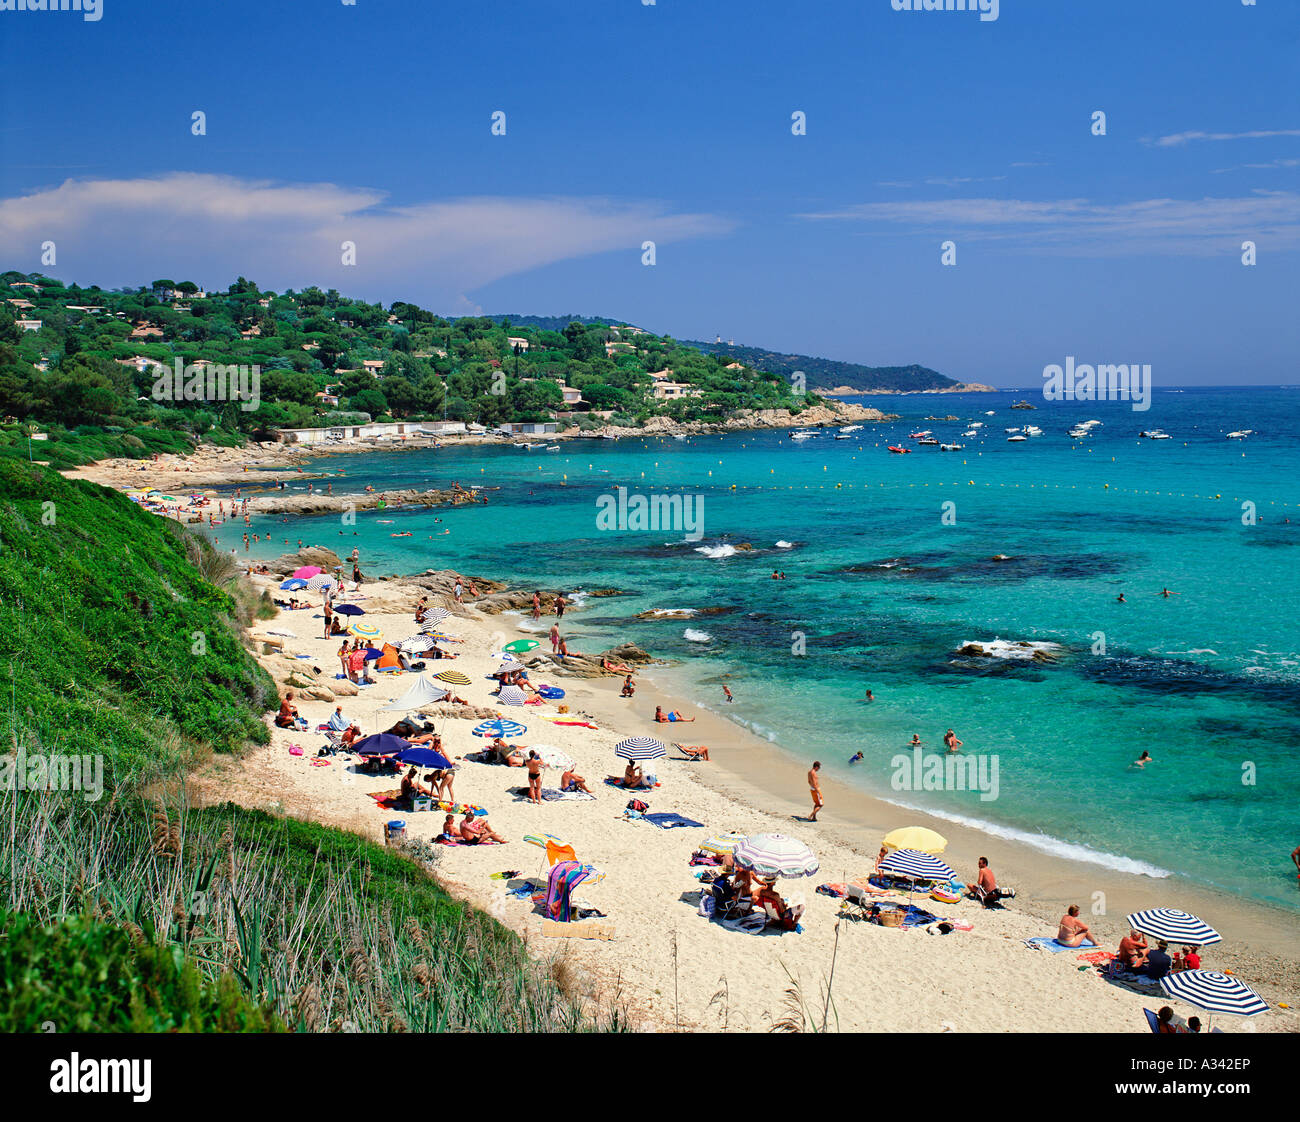 france cote d azur plage de l escalet st tropez stock photo royalty free image 10663245 alamy. Black Bedroom Furniture Sets. Home Design Ideas